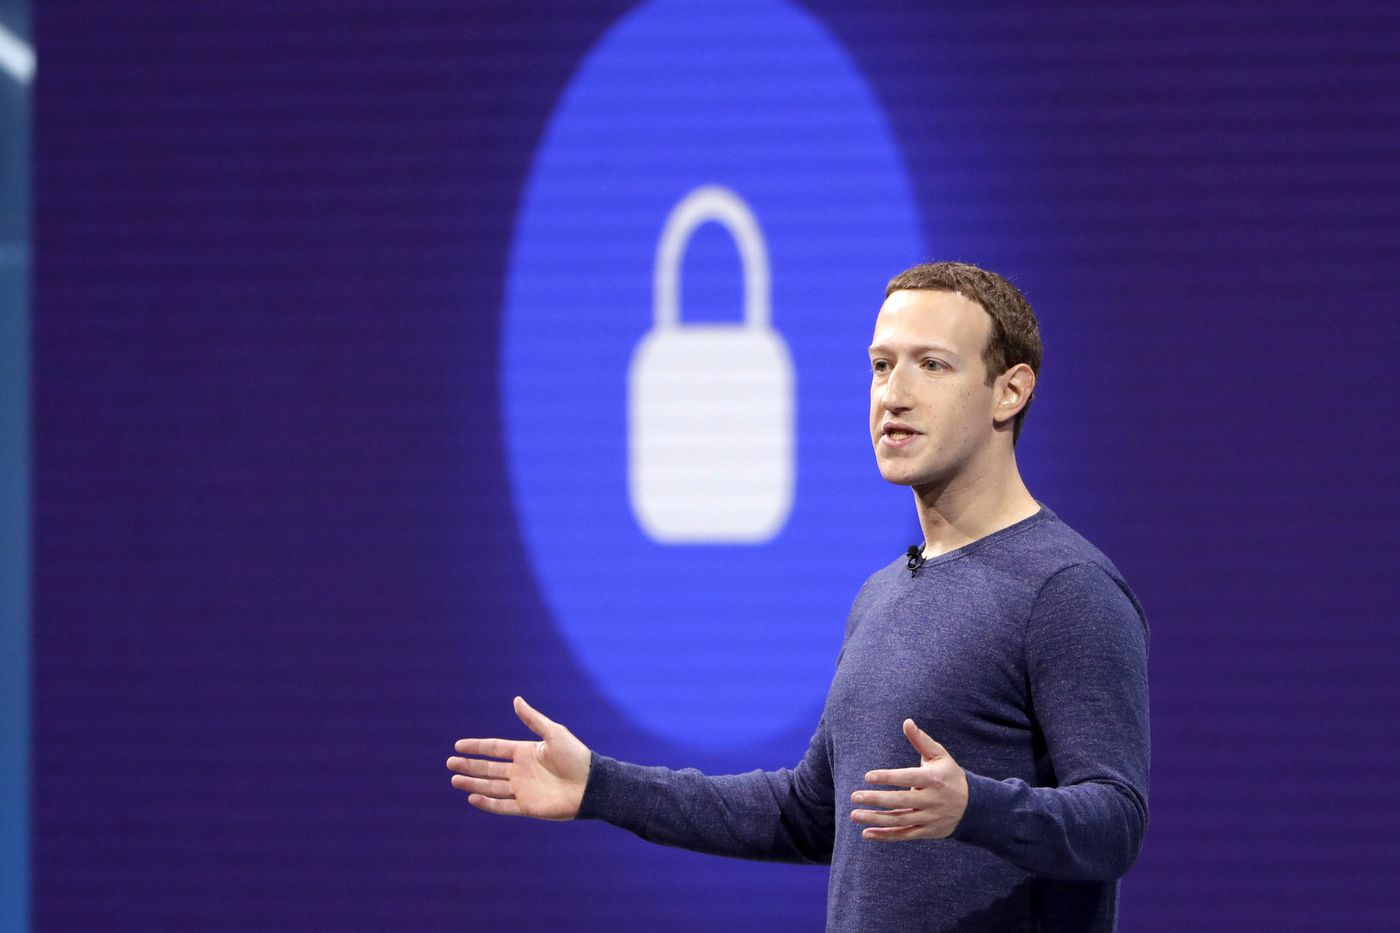 Let's send Facebook some election observers | Opinion